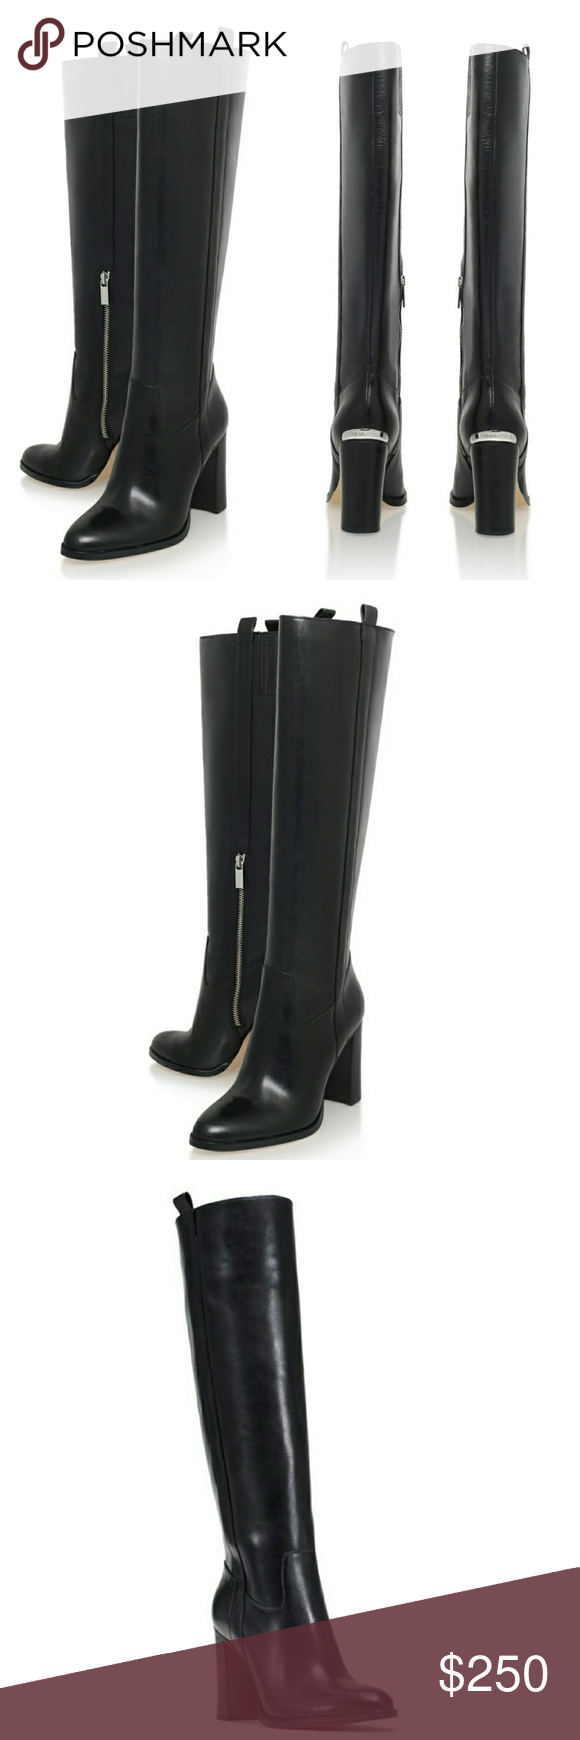 1008303d183e MICHAEL KORS Leather Shaw Tall Black Boots A shapely tall boot by MICHAEL  Michael